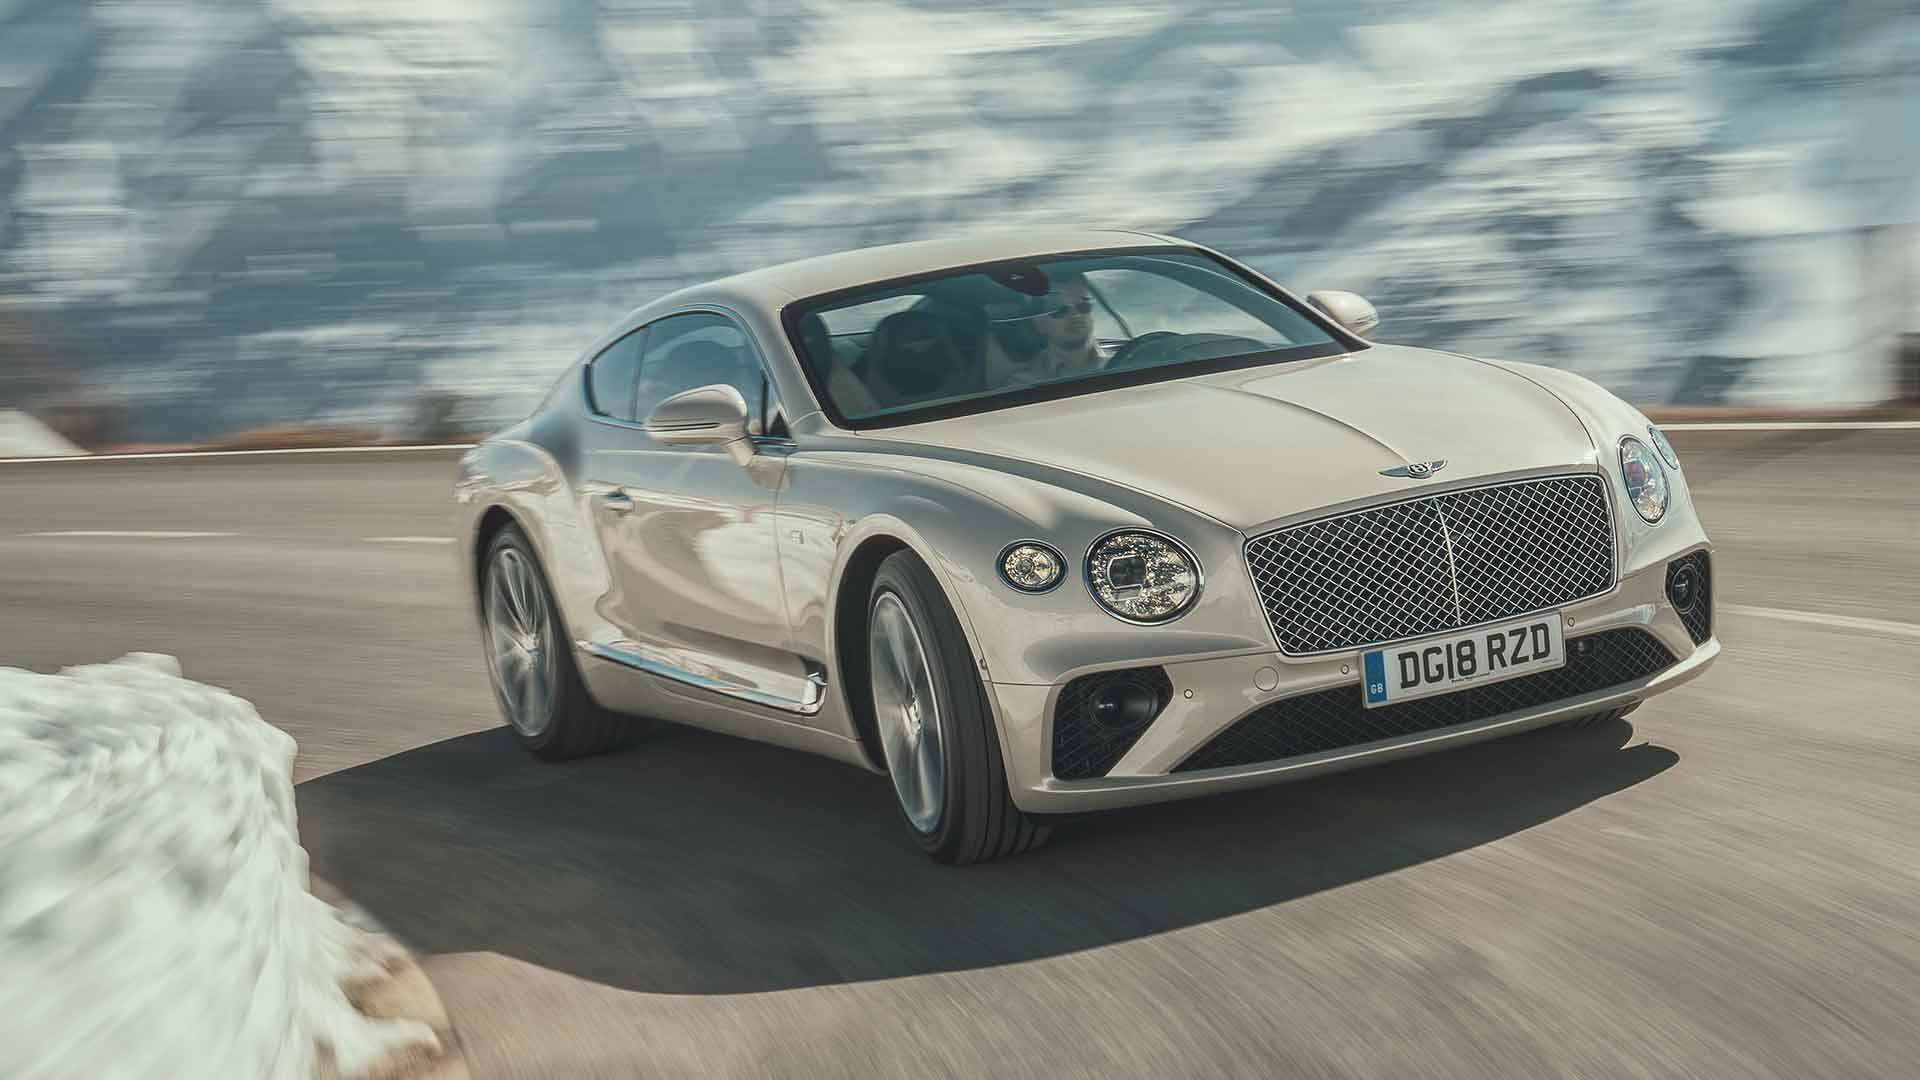 73 New 2019 Bentley Continental GT Specs And Review